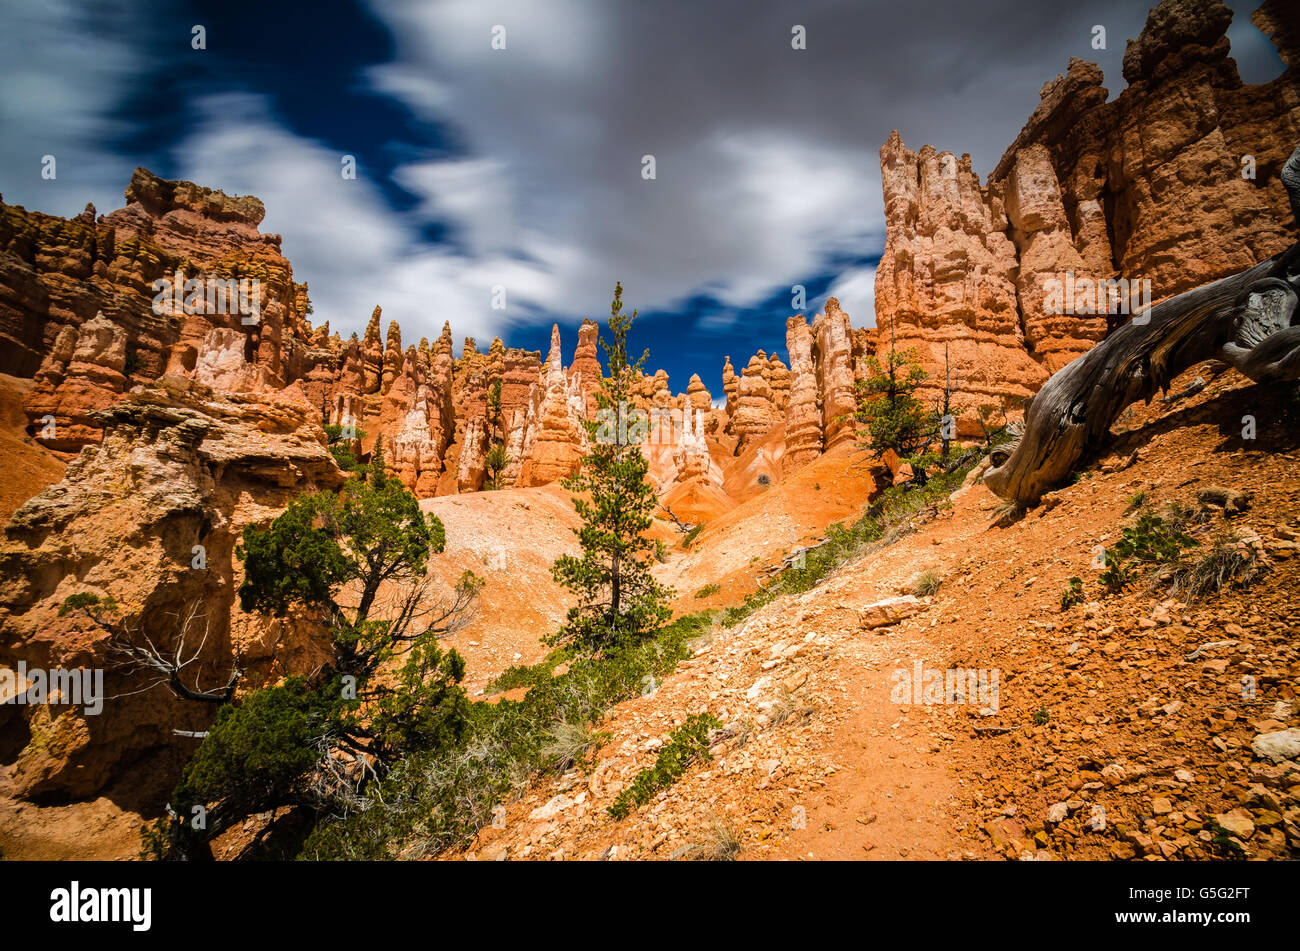 An Adventure in Bryce Canyon National Park - Stock Image